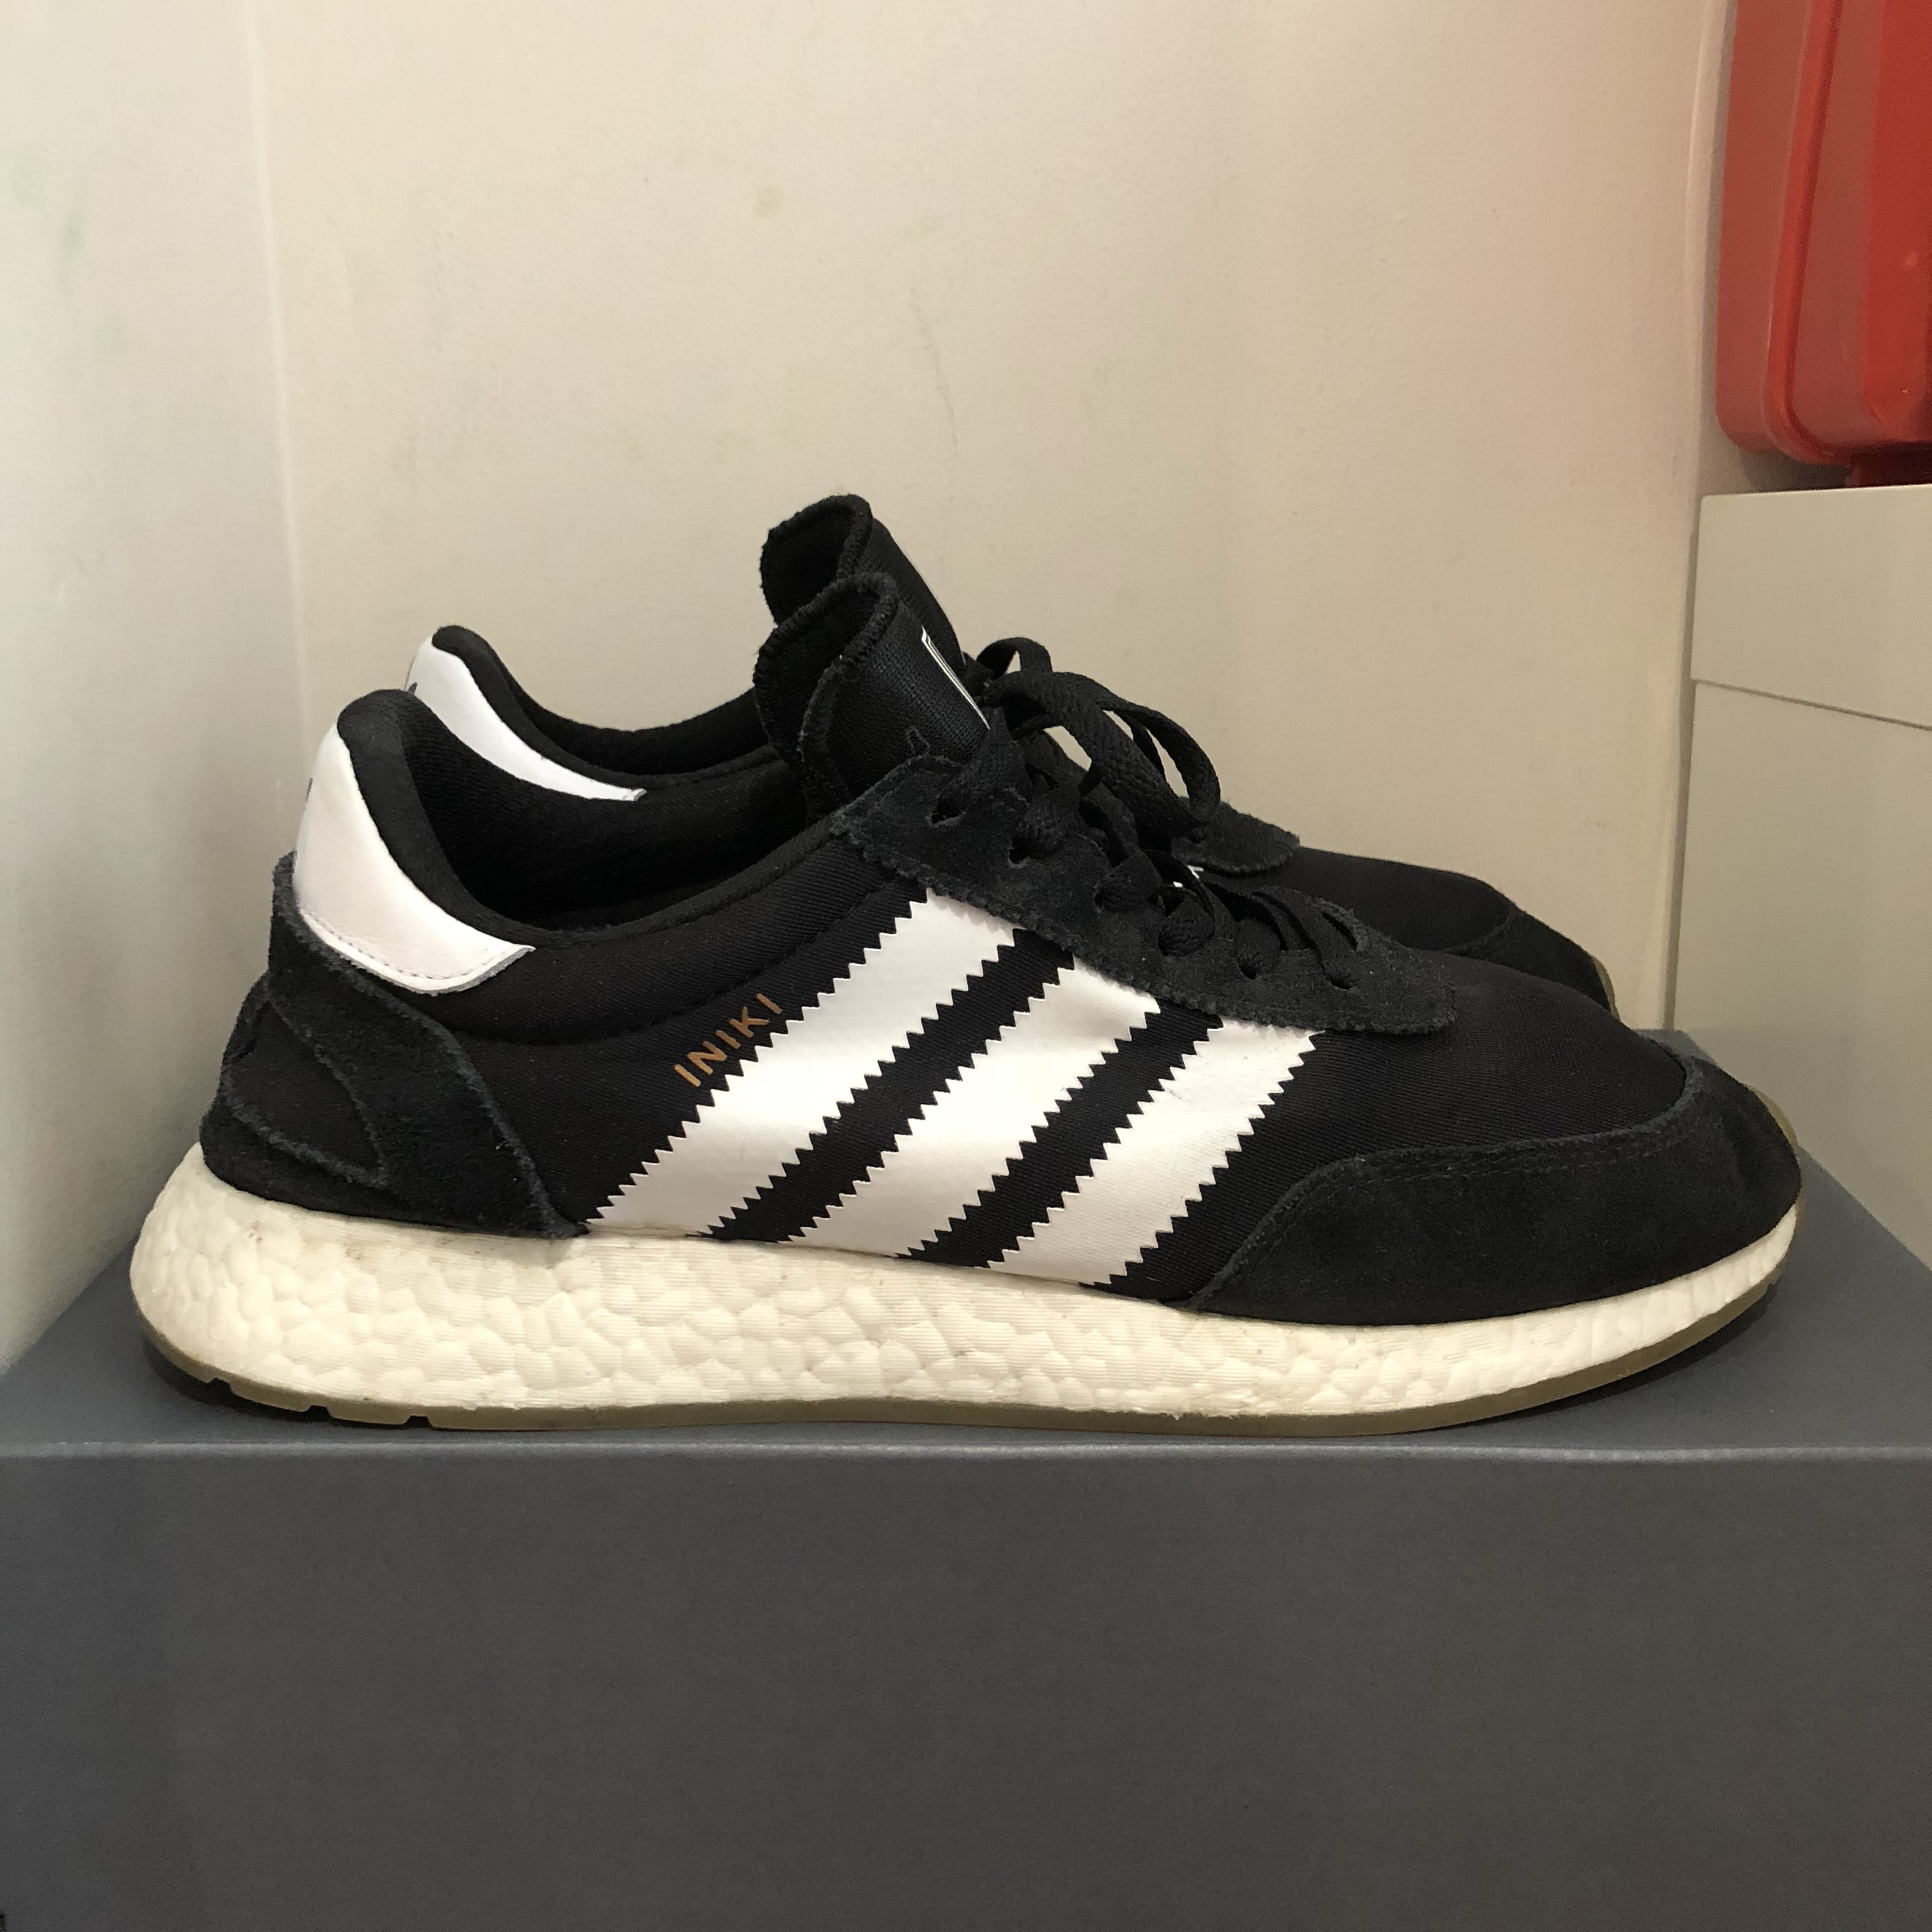 Customize Your Own miadidas I 5923 Boost Now JustFreshKicks